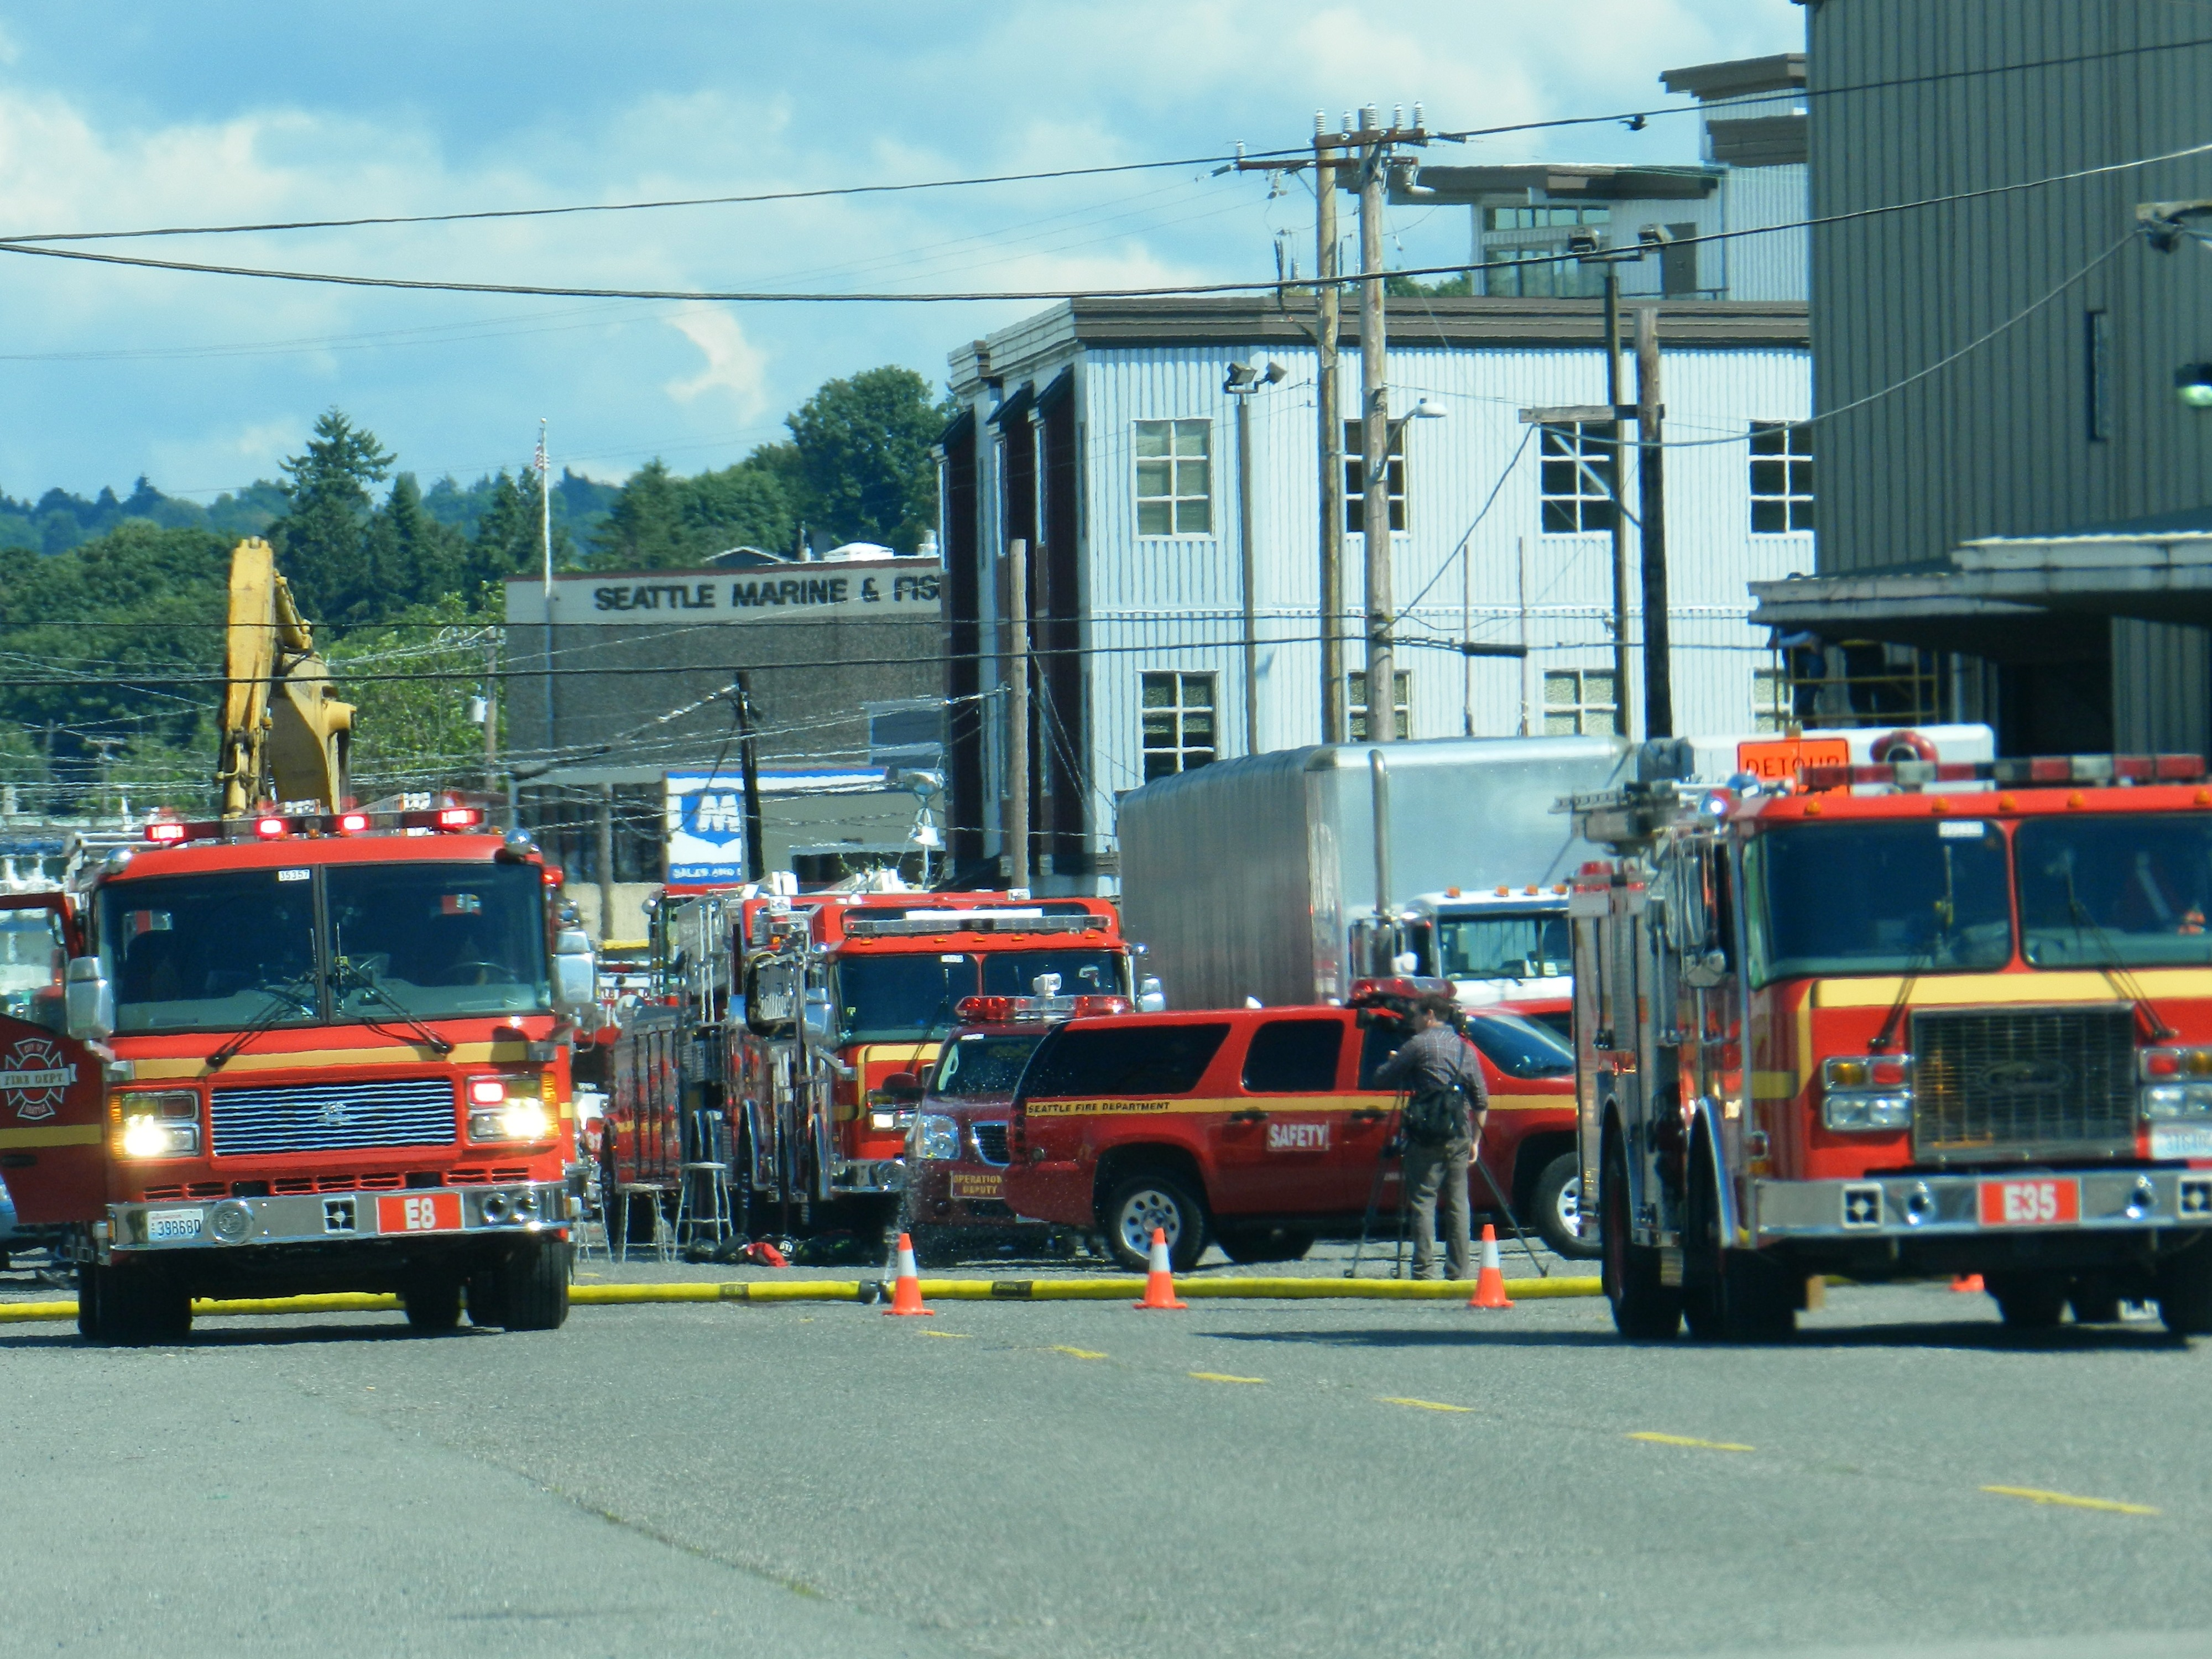 Seattle Fire Department | NW Fire Blog